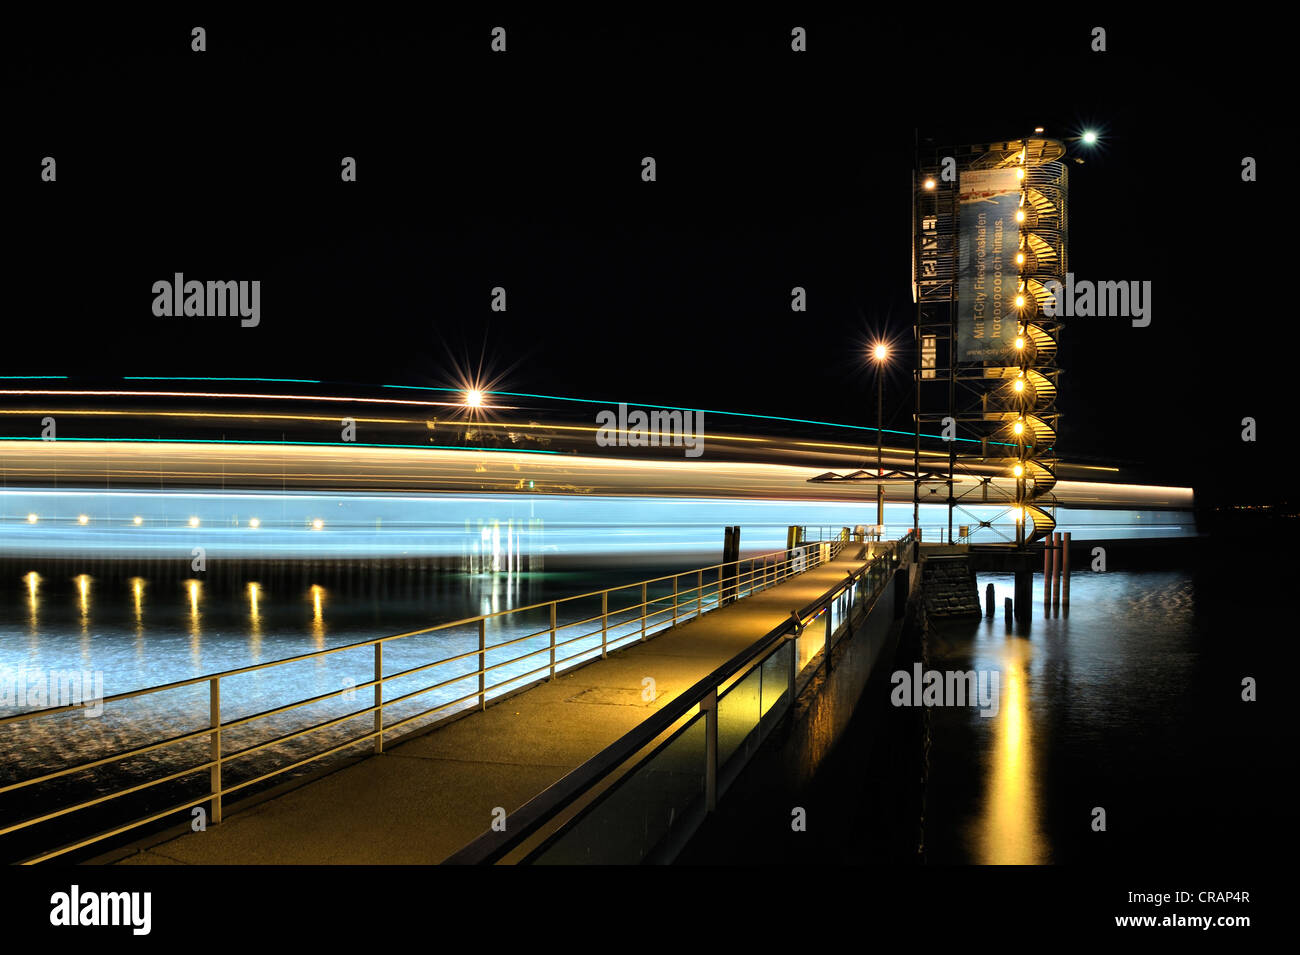 Light trace of the moving Euregia ferry and the illuminated Molenturm tower in the ferry port of Friedrichshafen - Stock Image